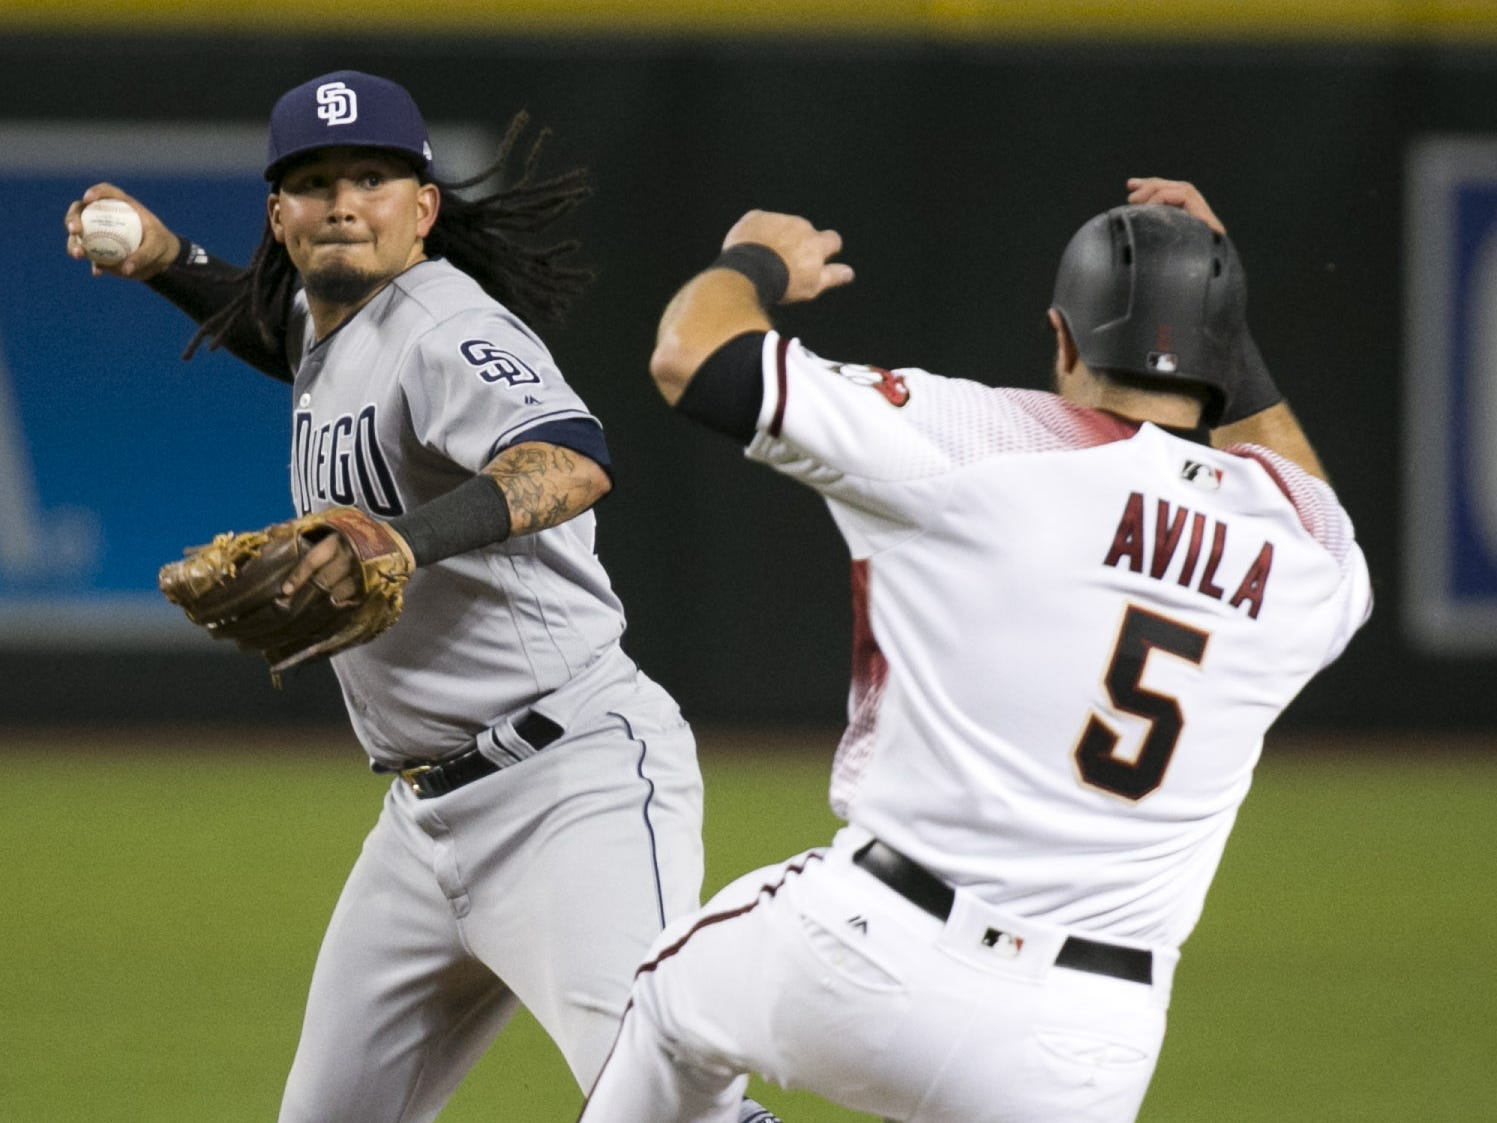 Padres shortstop Freddy Galvis turns a double play against the Diamondbacks Alex Avila during the fifth inning of the major league baseball game at Chase Field in Phoenix on Monday, September 3, 2018.